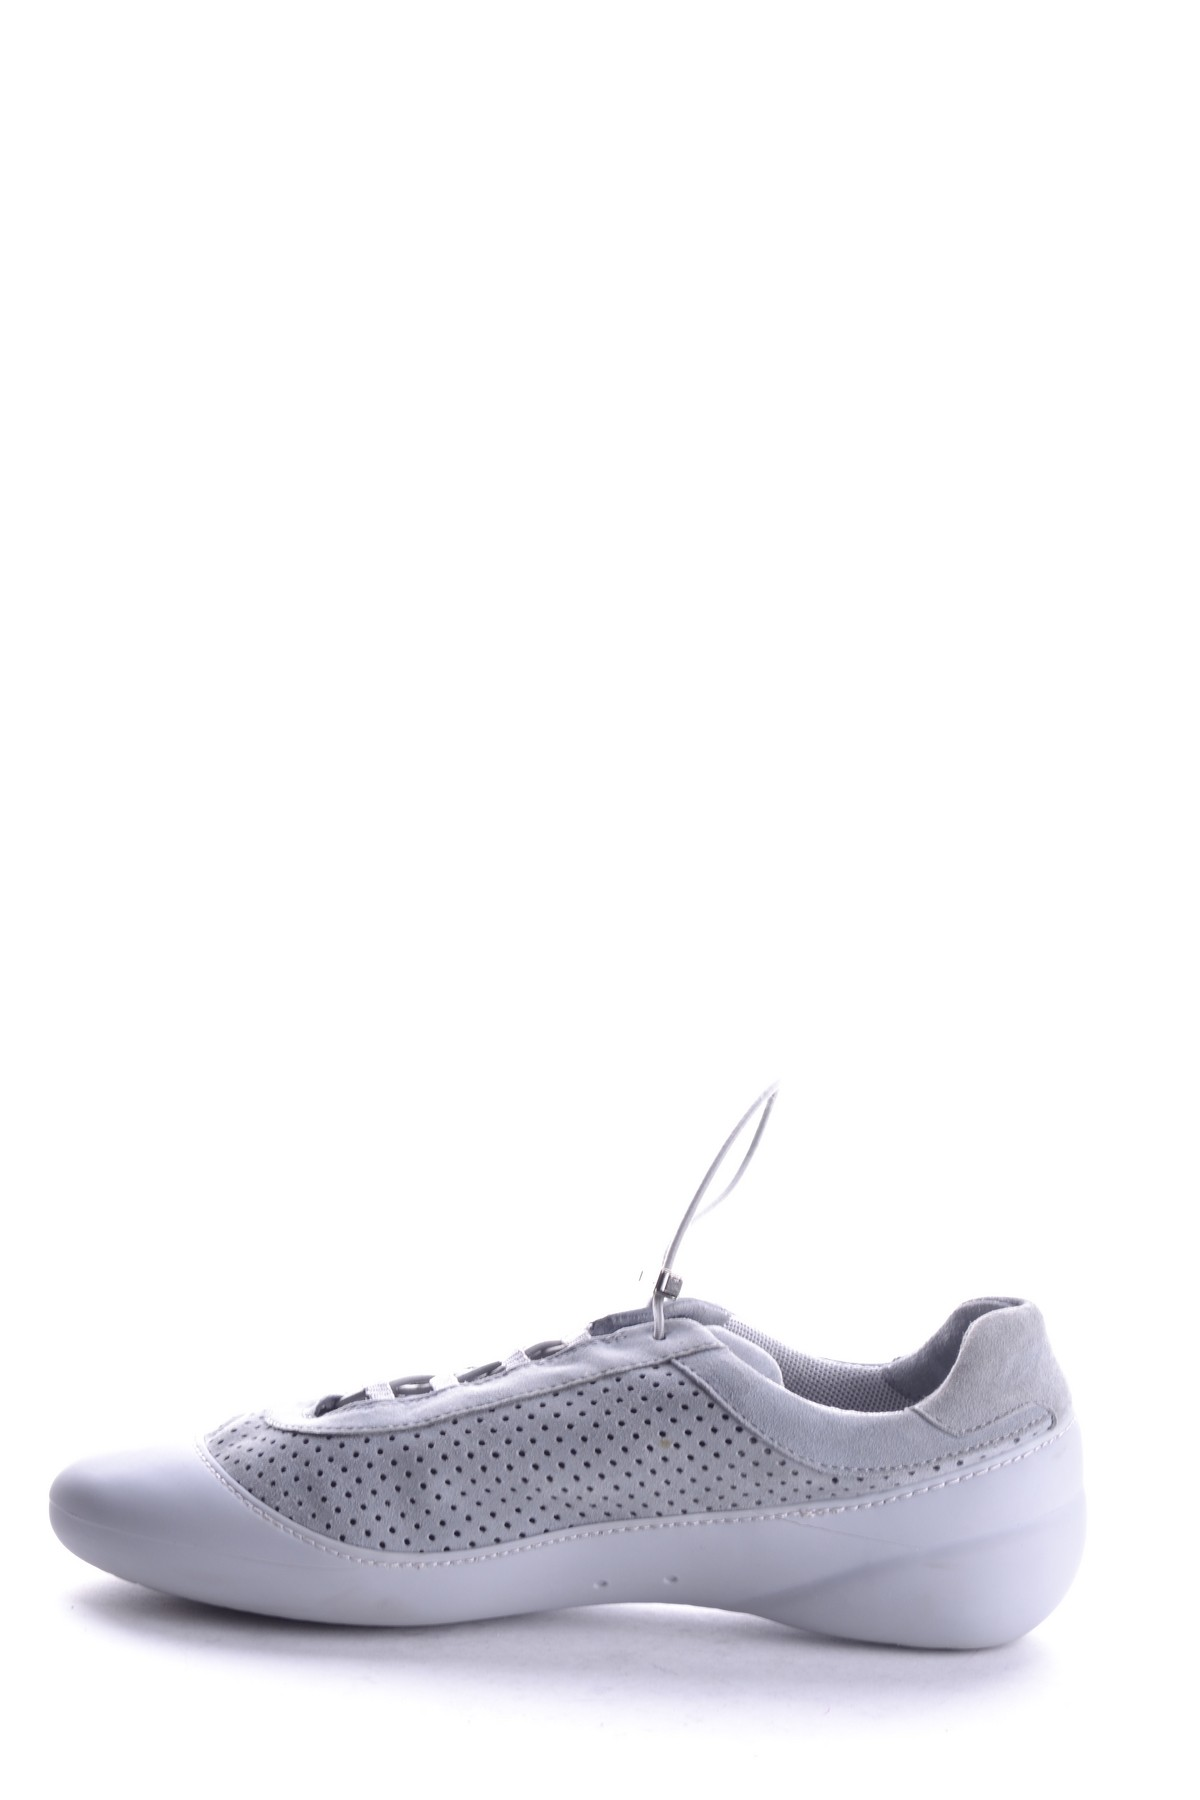 promo code 05121 ac041 Pirelli scarpe shoes AN430 - Outlet Bicocca